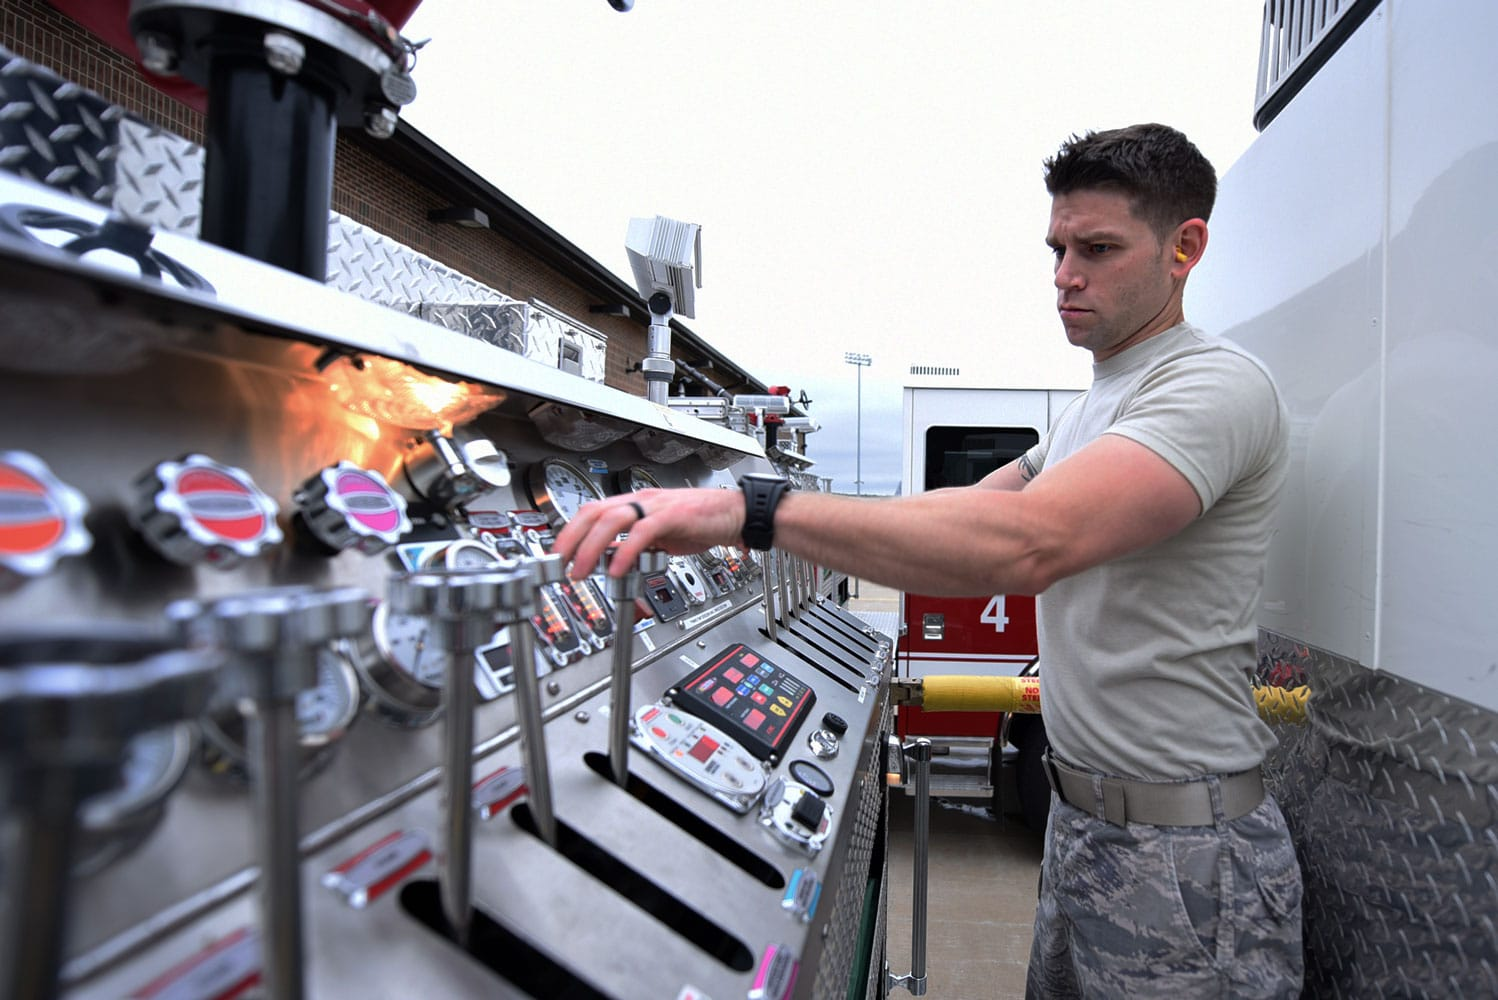 U.S. Air Force Airman 1st Class Nicholas Sands, 19th Civil Engineer Squadron Fire Department firefighter, ensures all firetruck components are operational, at Little Rock Air Force Base, Ark. Little Rock AFB firefighters perform weekly inspection checks on all equipment and vehicles to ensure they are fully operable.